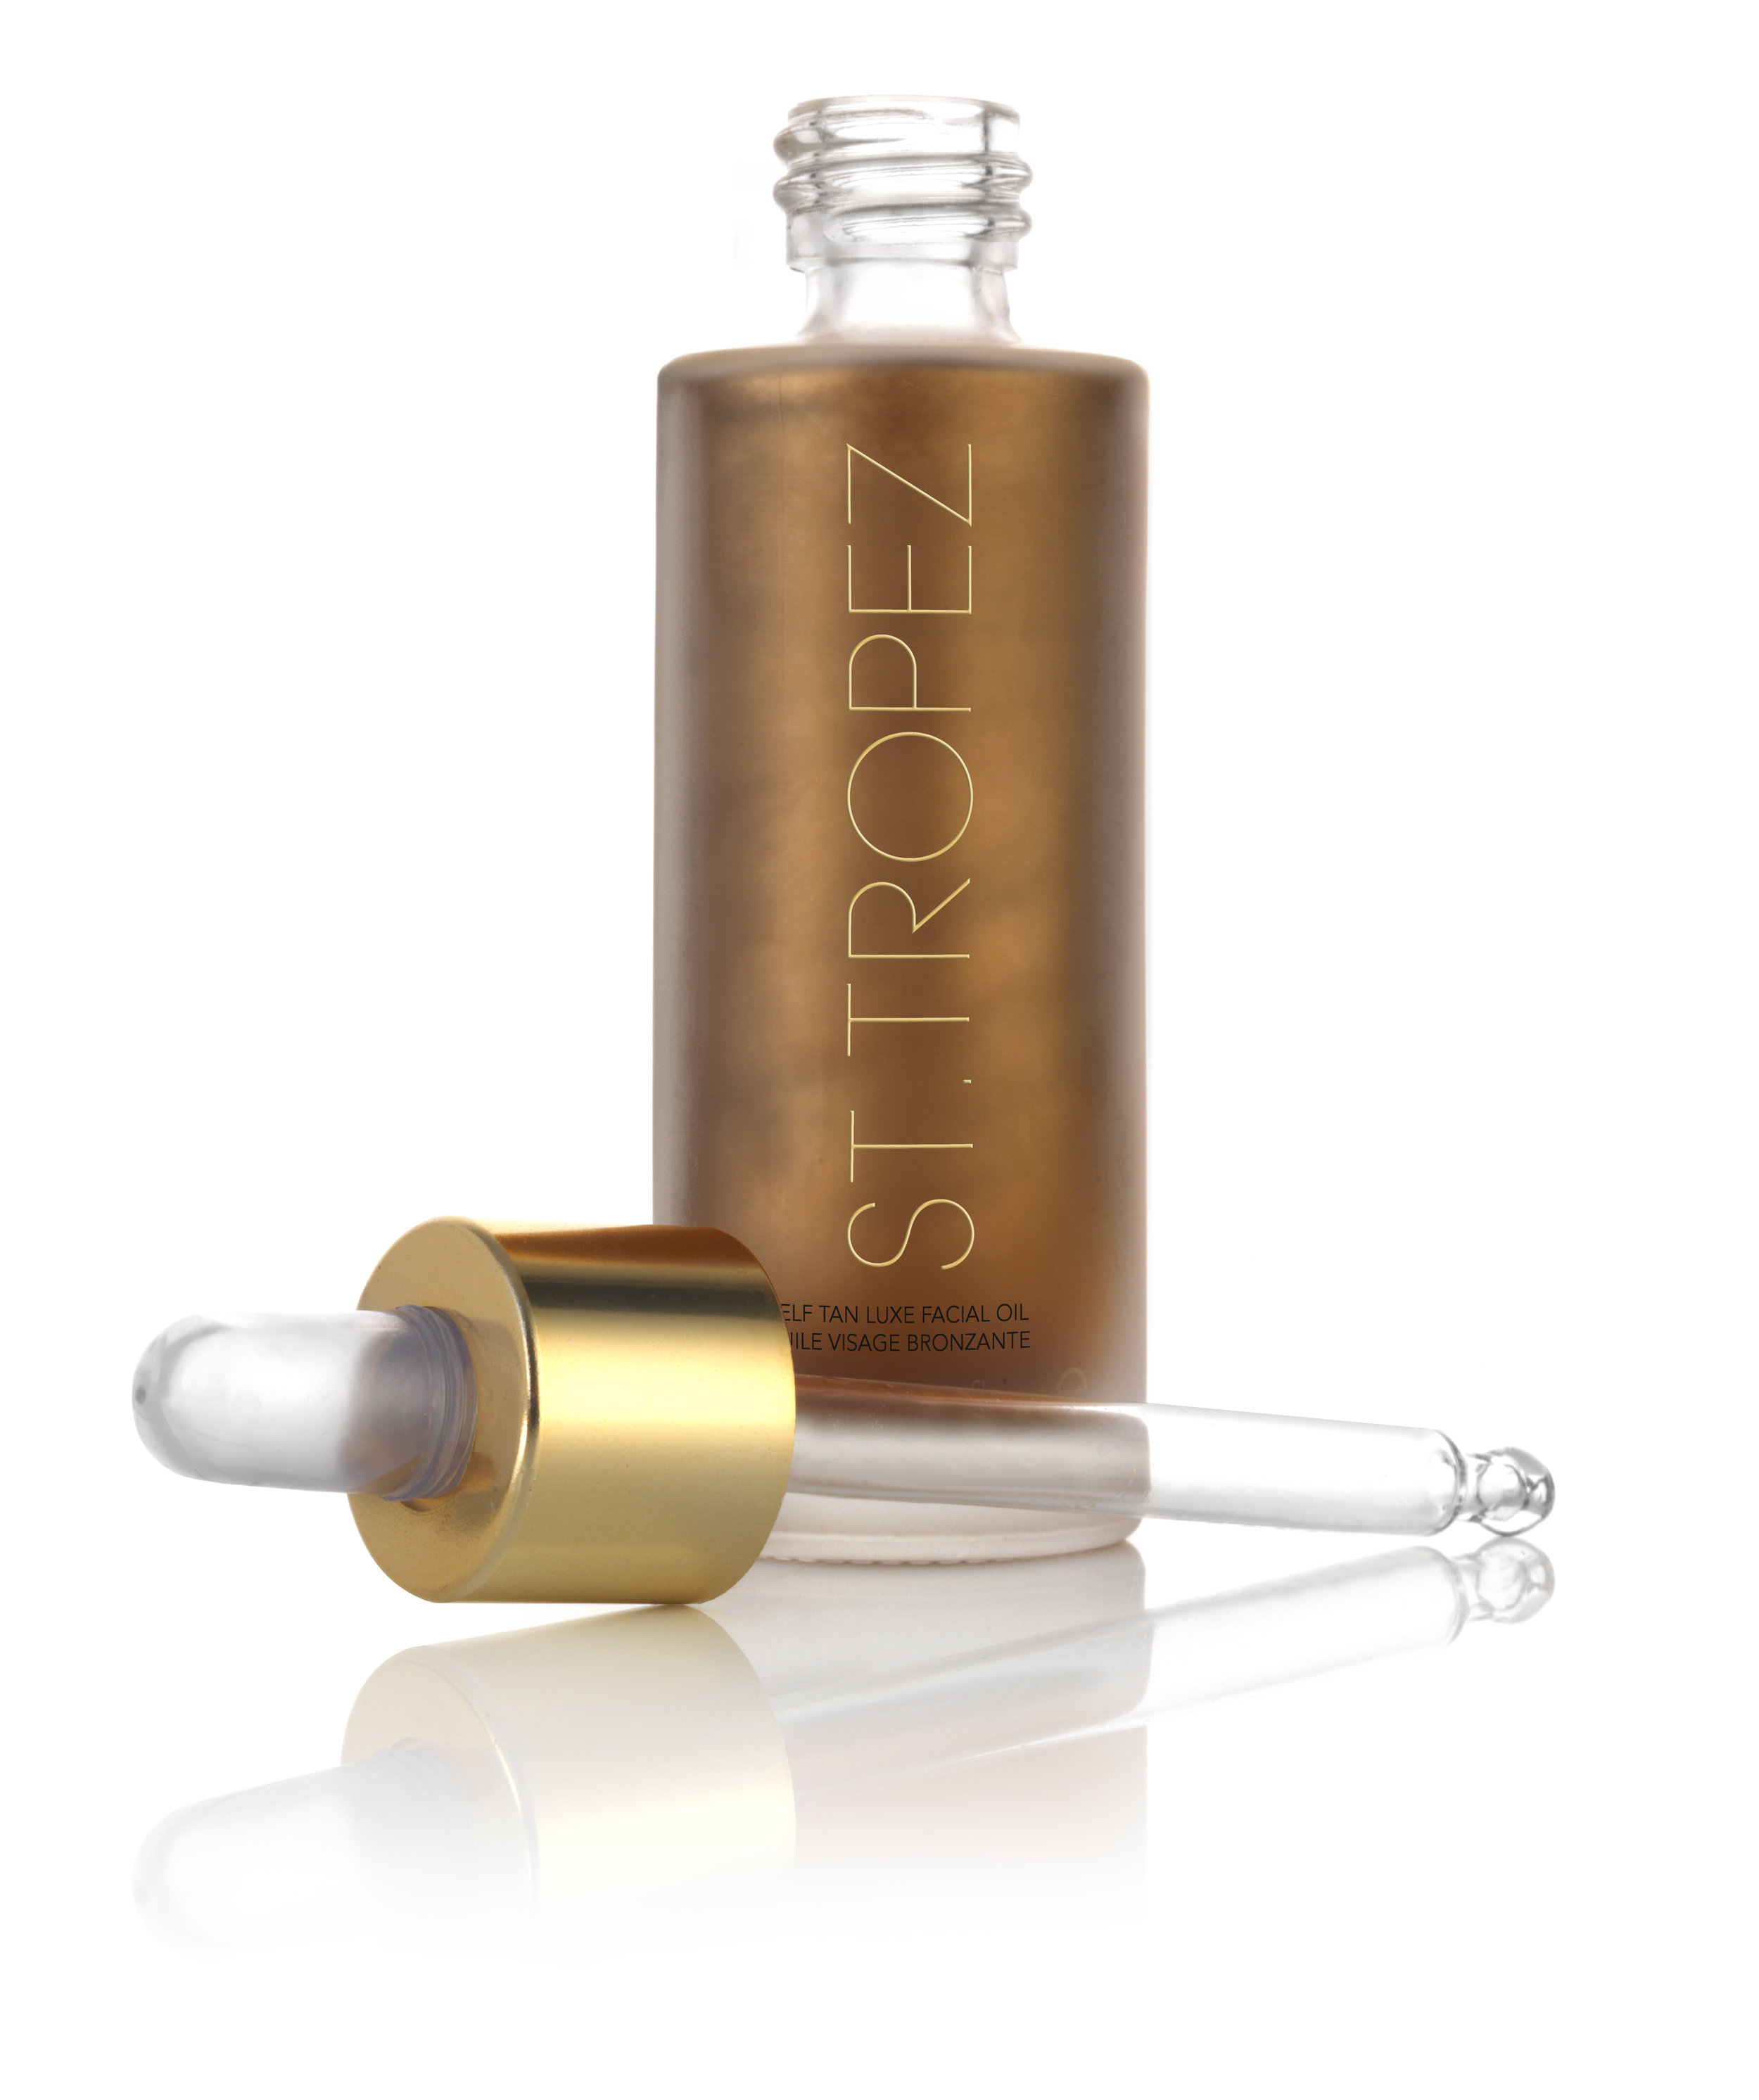 ST.TROPEZ Self Tan Luxe Facial Oil 30ml (pipette pictured).jpg